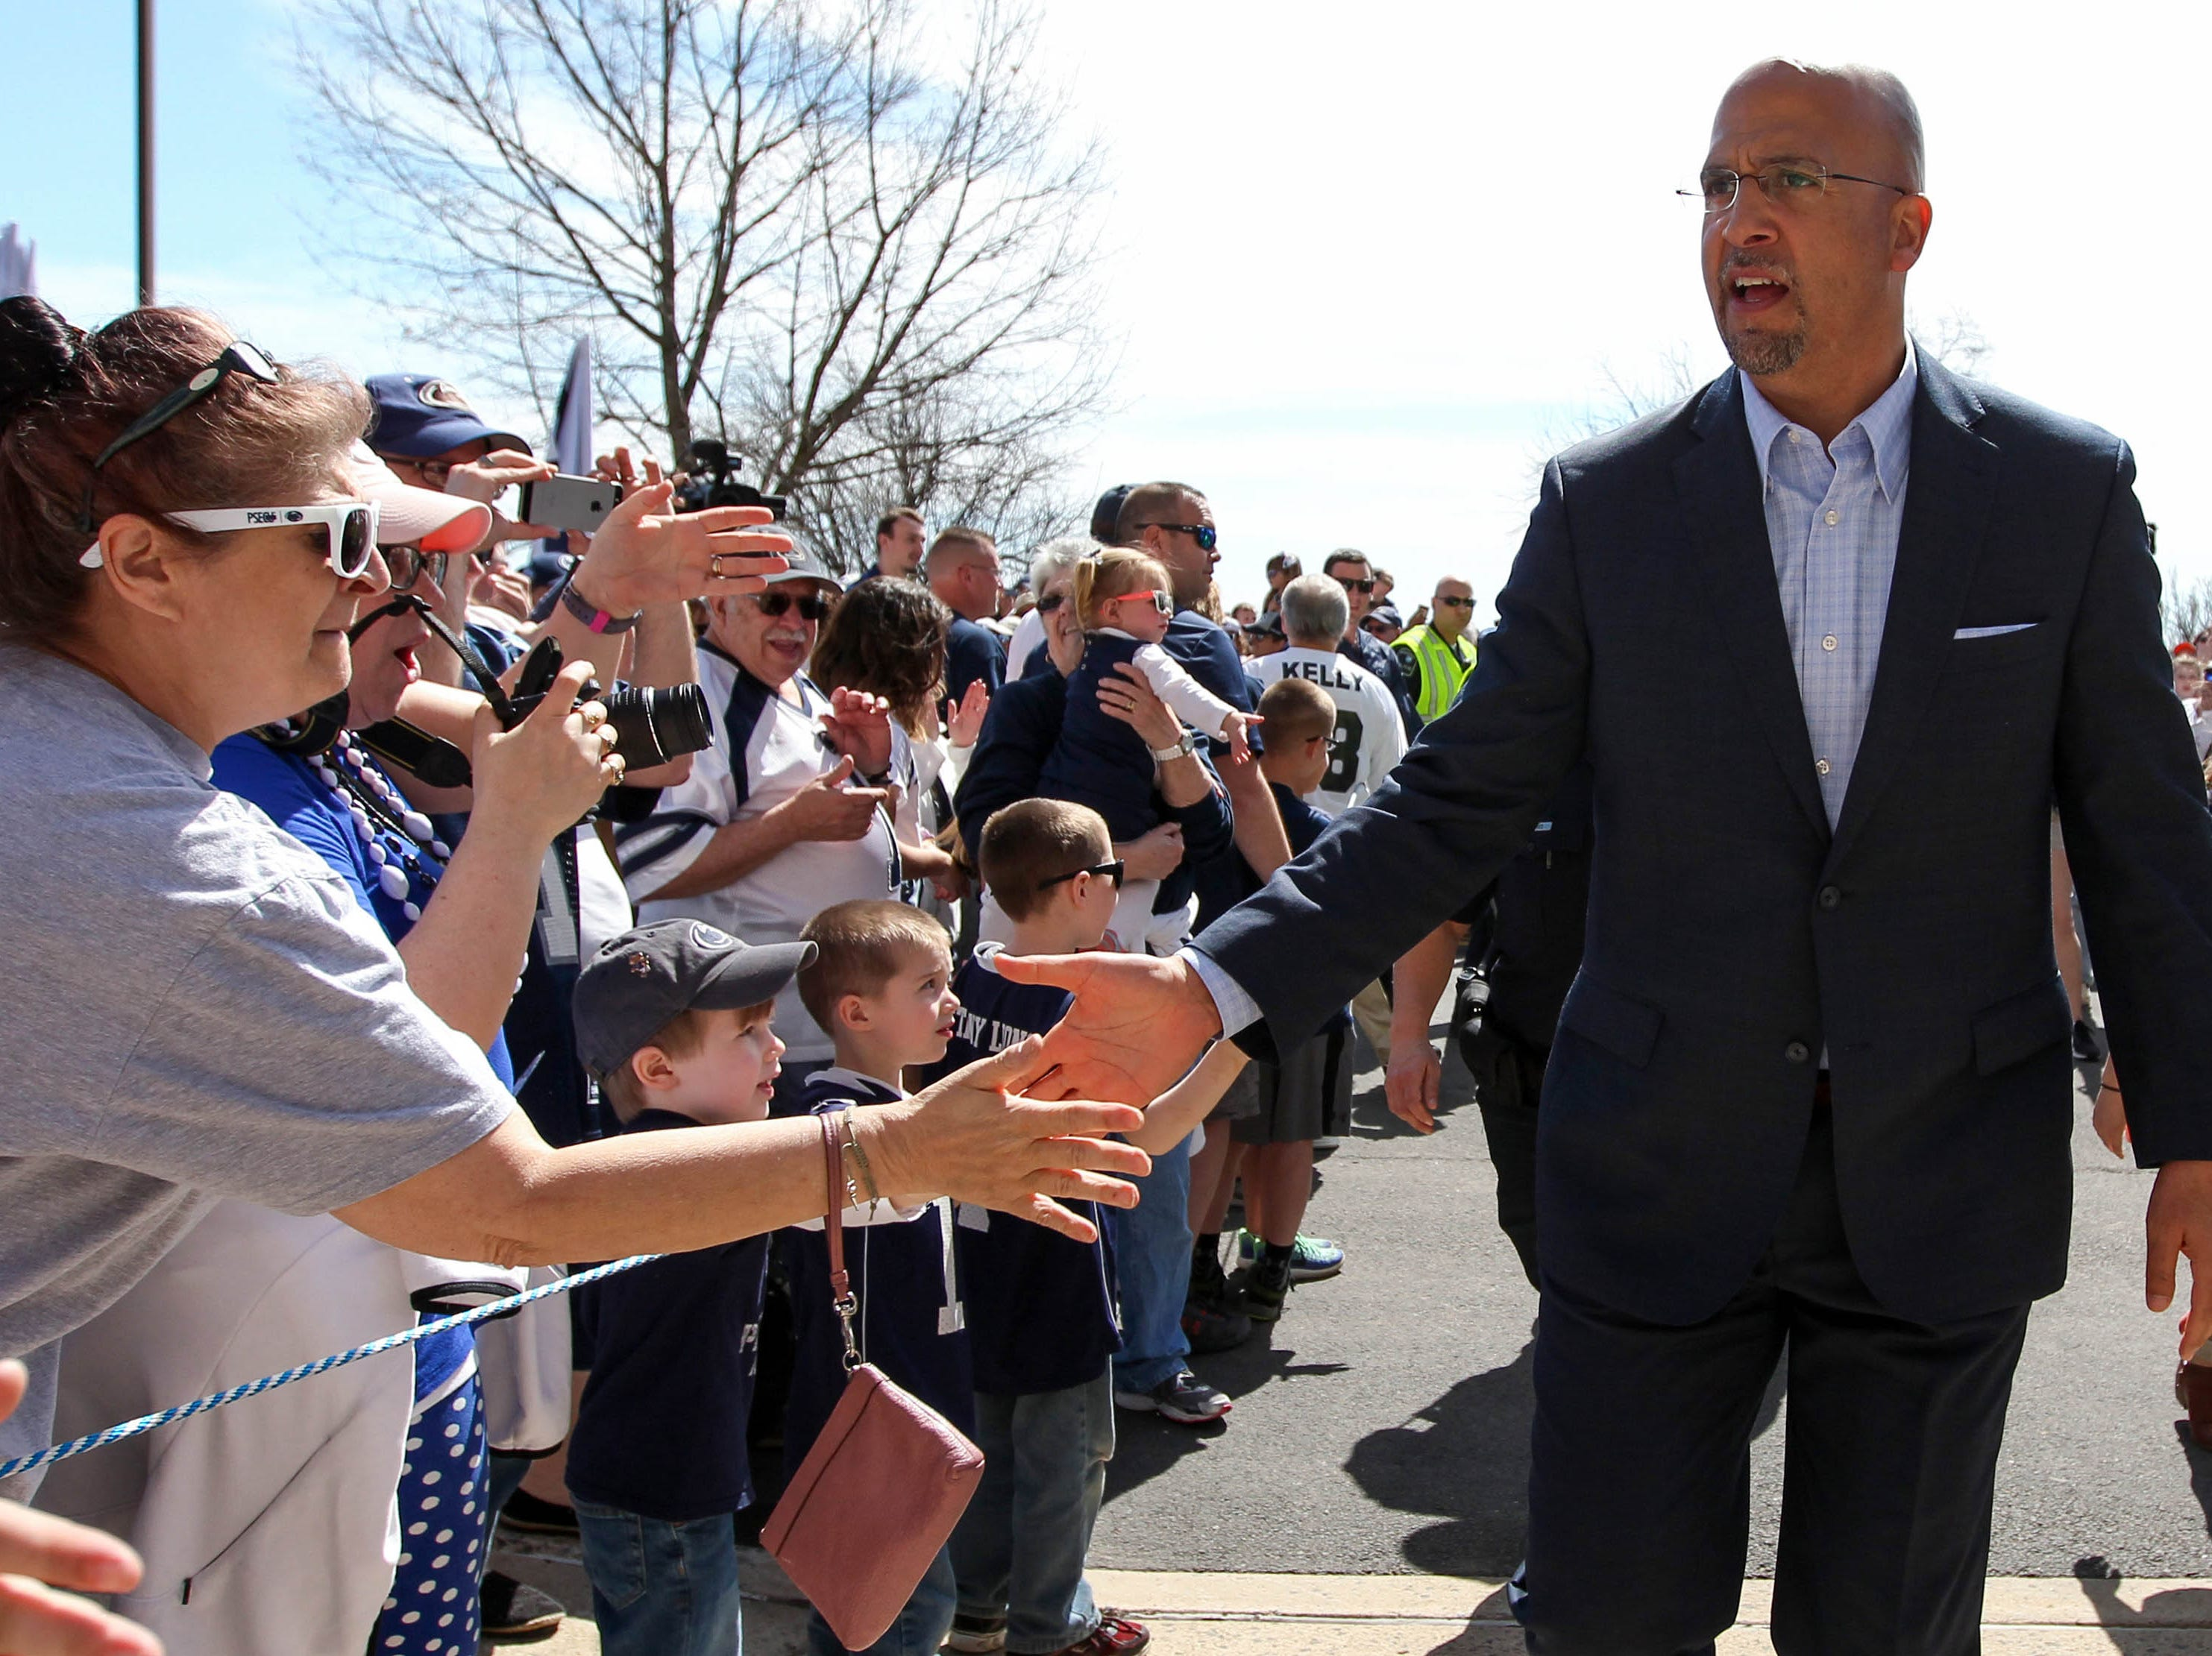 Apr 13, 2019; University Park, PA, USA; Penn State Nittany Lions head coach James Franklin shakes hands with the fans prior to the Blue White spring game at Beaver Stadium. Mandatory Credit: Matthew O'Haren-USA TODAY Sports